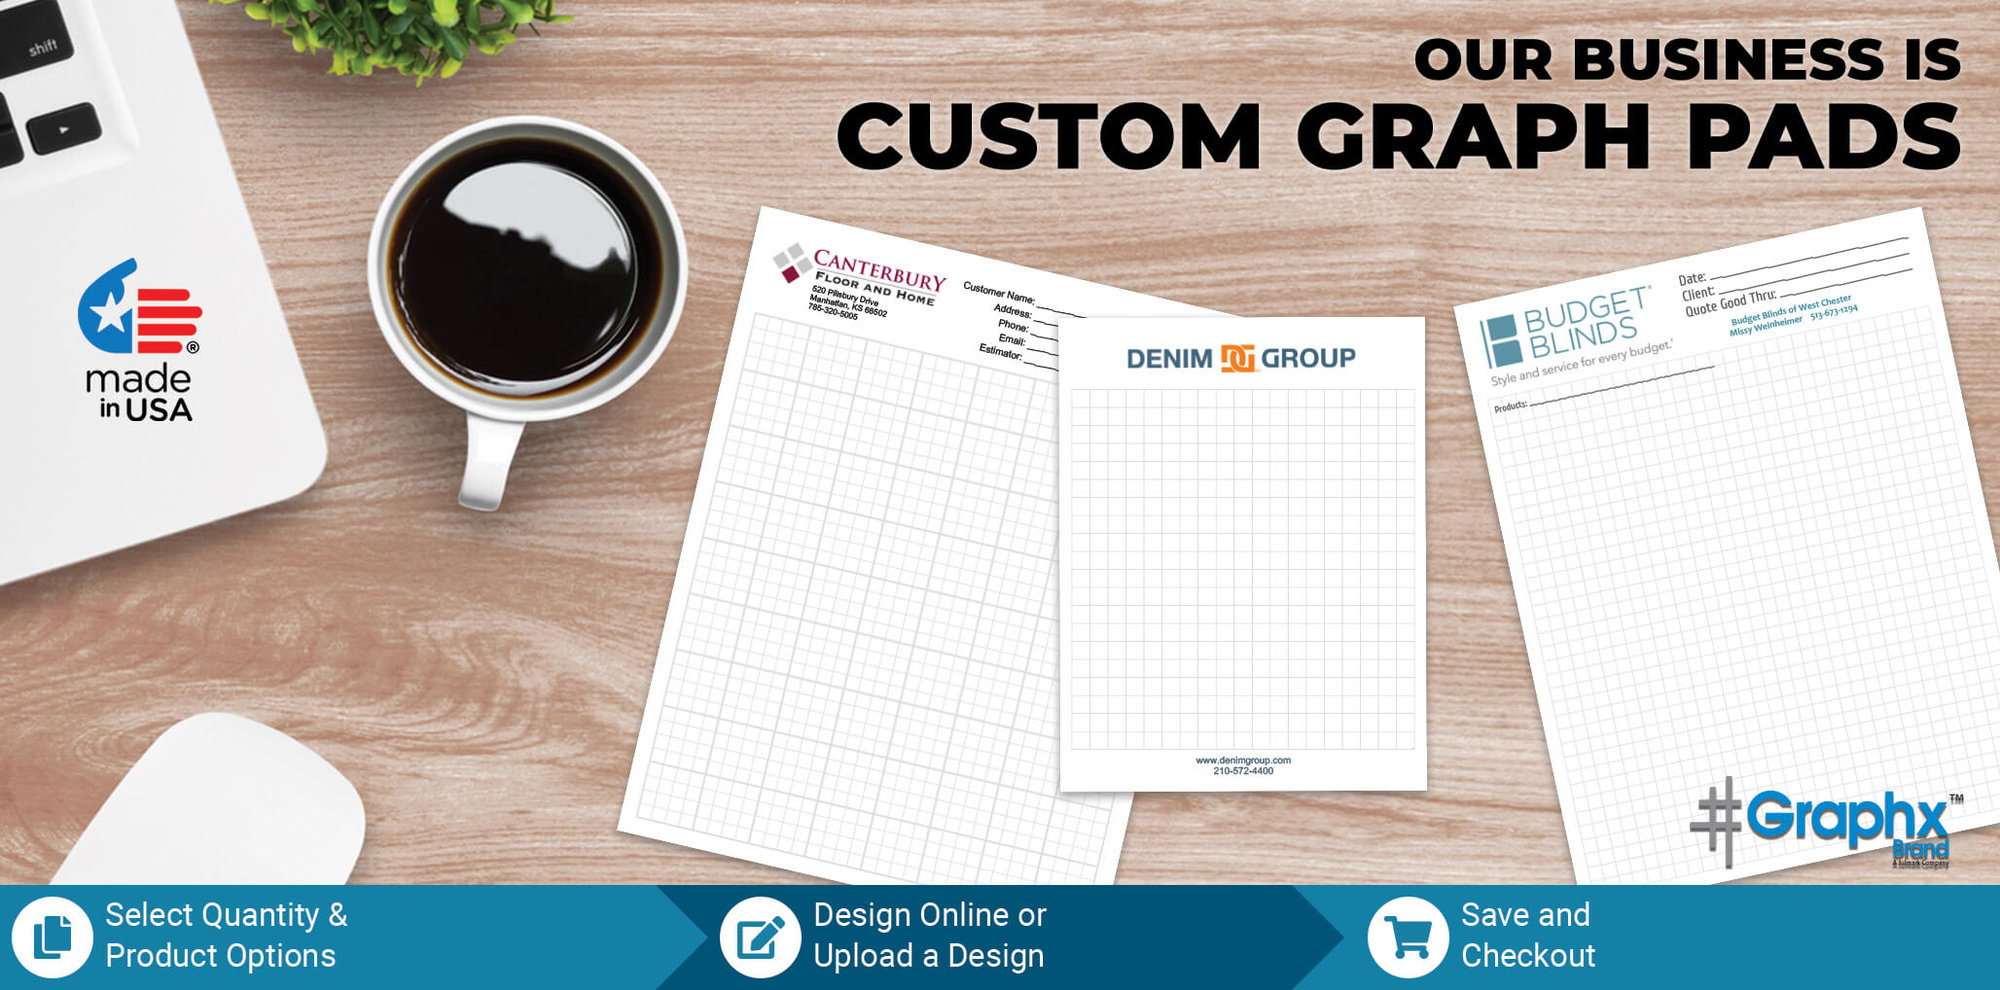 https://printpps.com/images/products_gallery_images/Graph-Pads_Product-Page-Banner_1_66.jpg